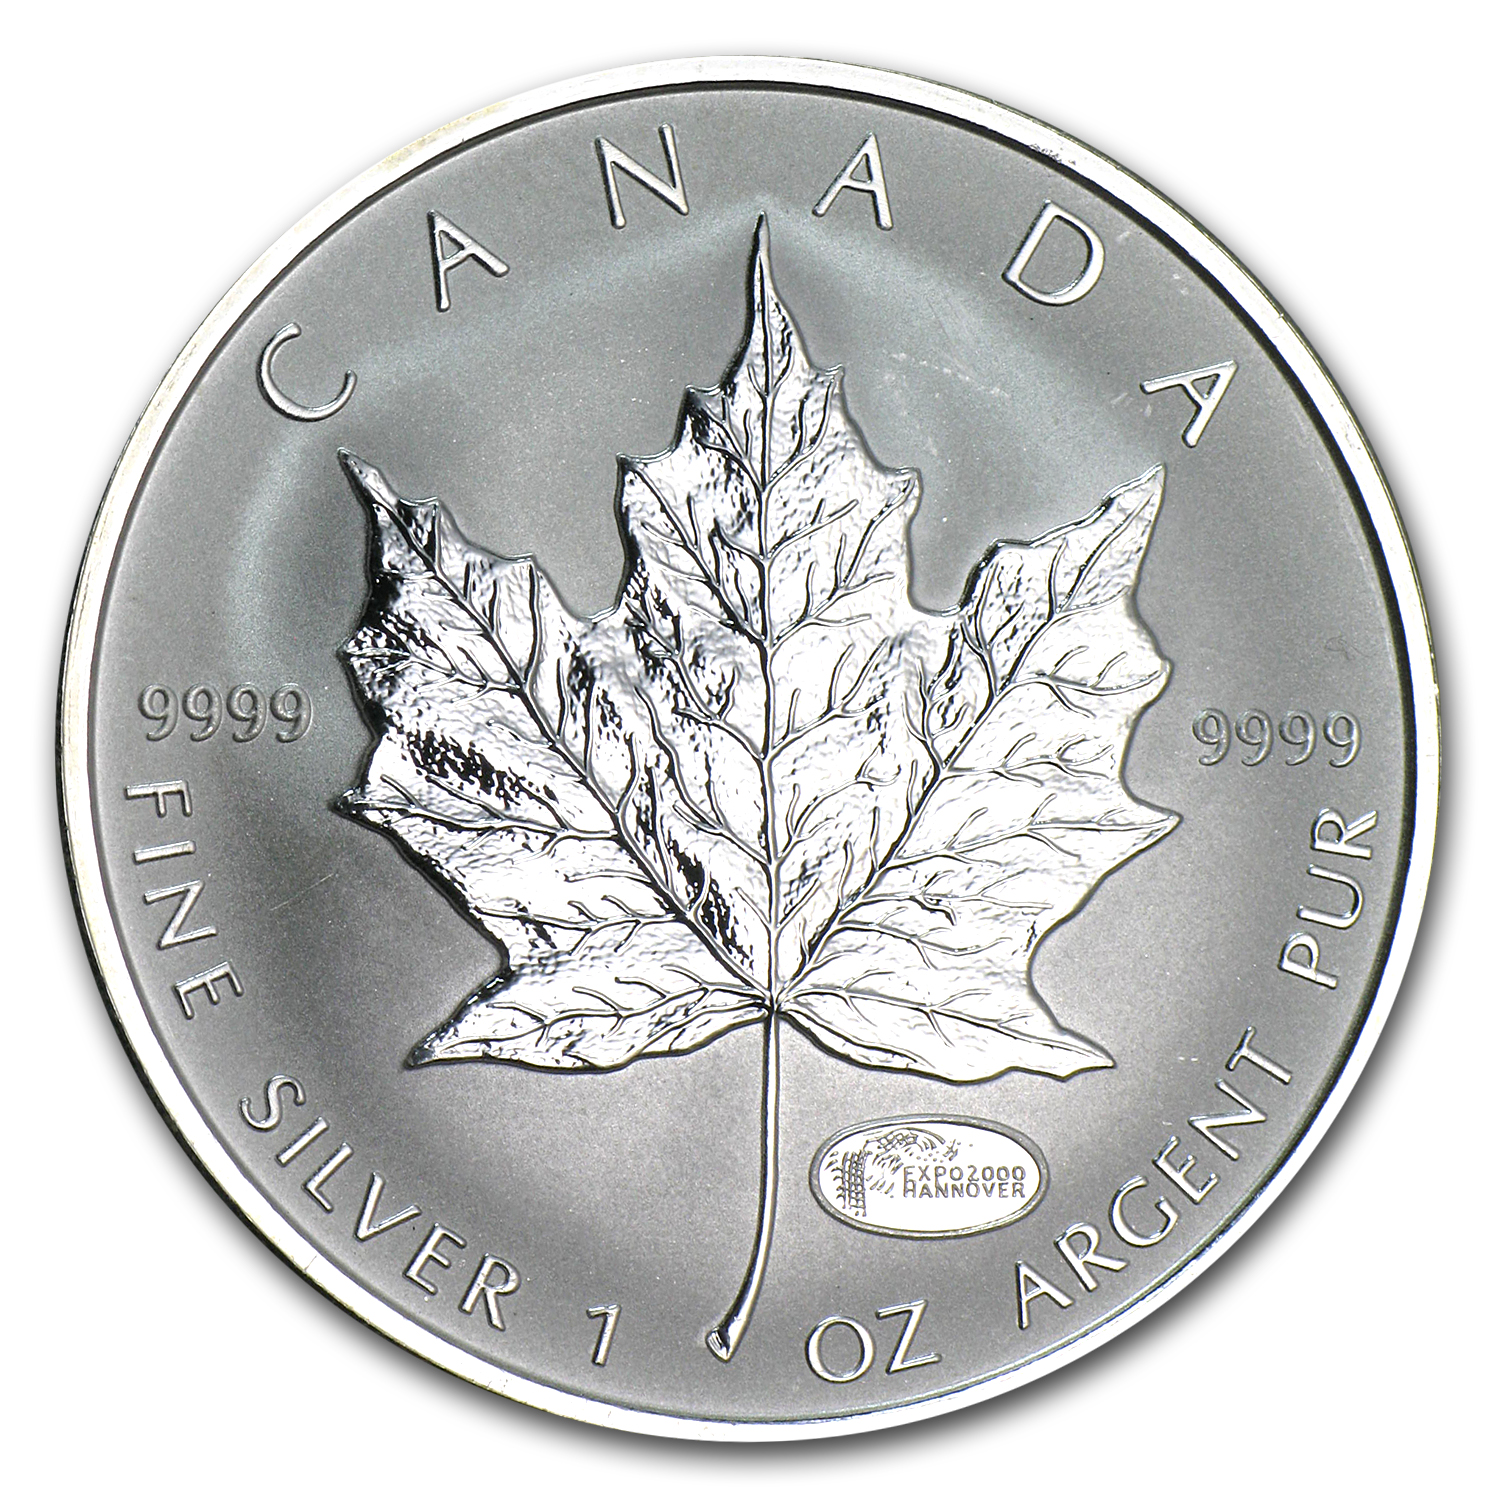 2000 1 oz Silver Canadian Maple Leaf - Expo 2000 Hannover Privy